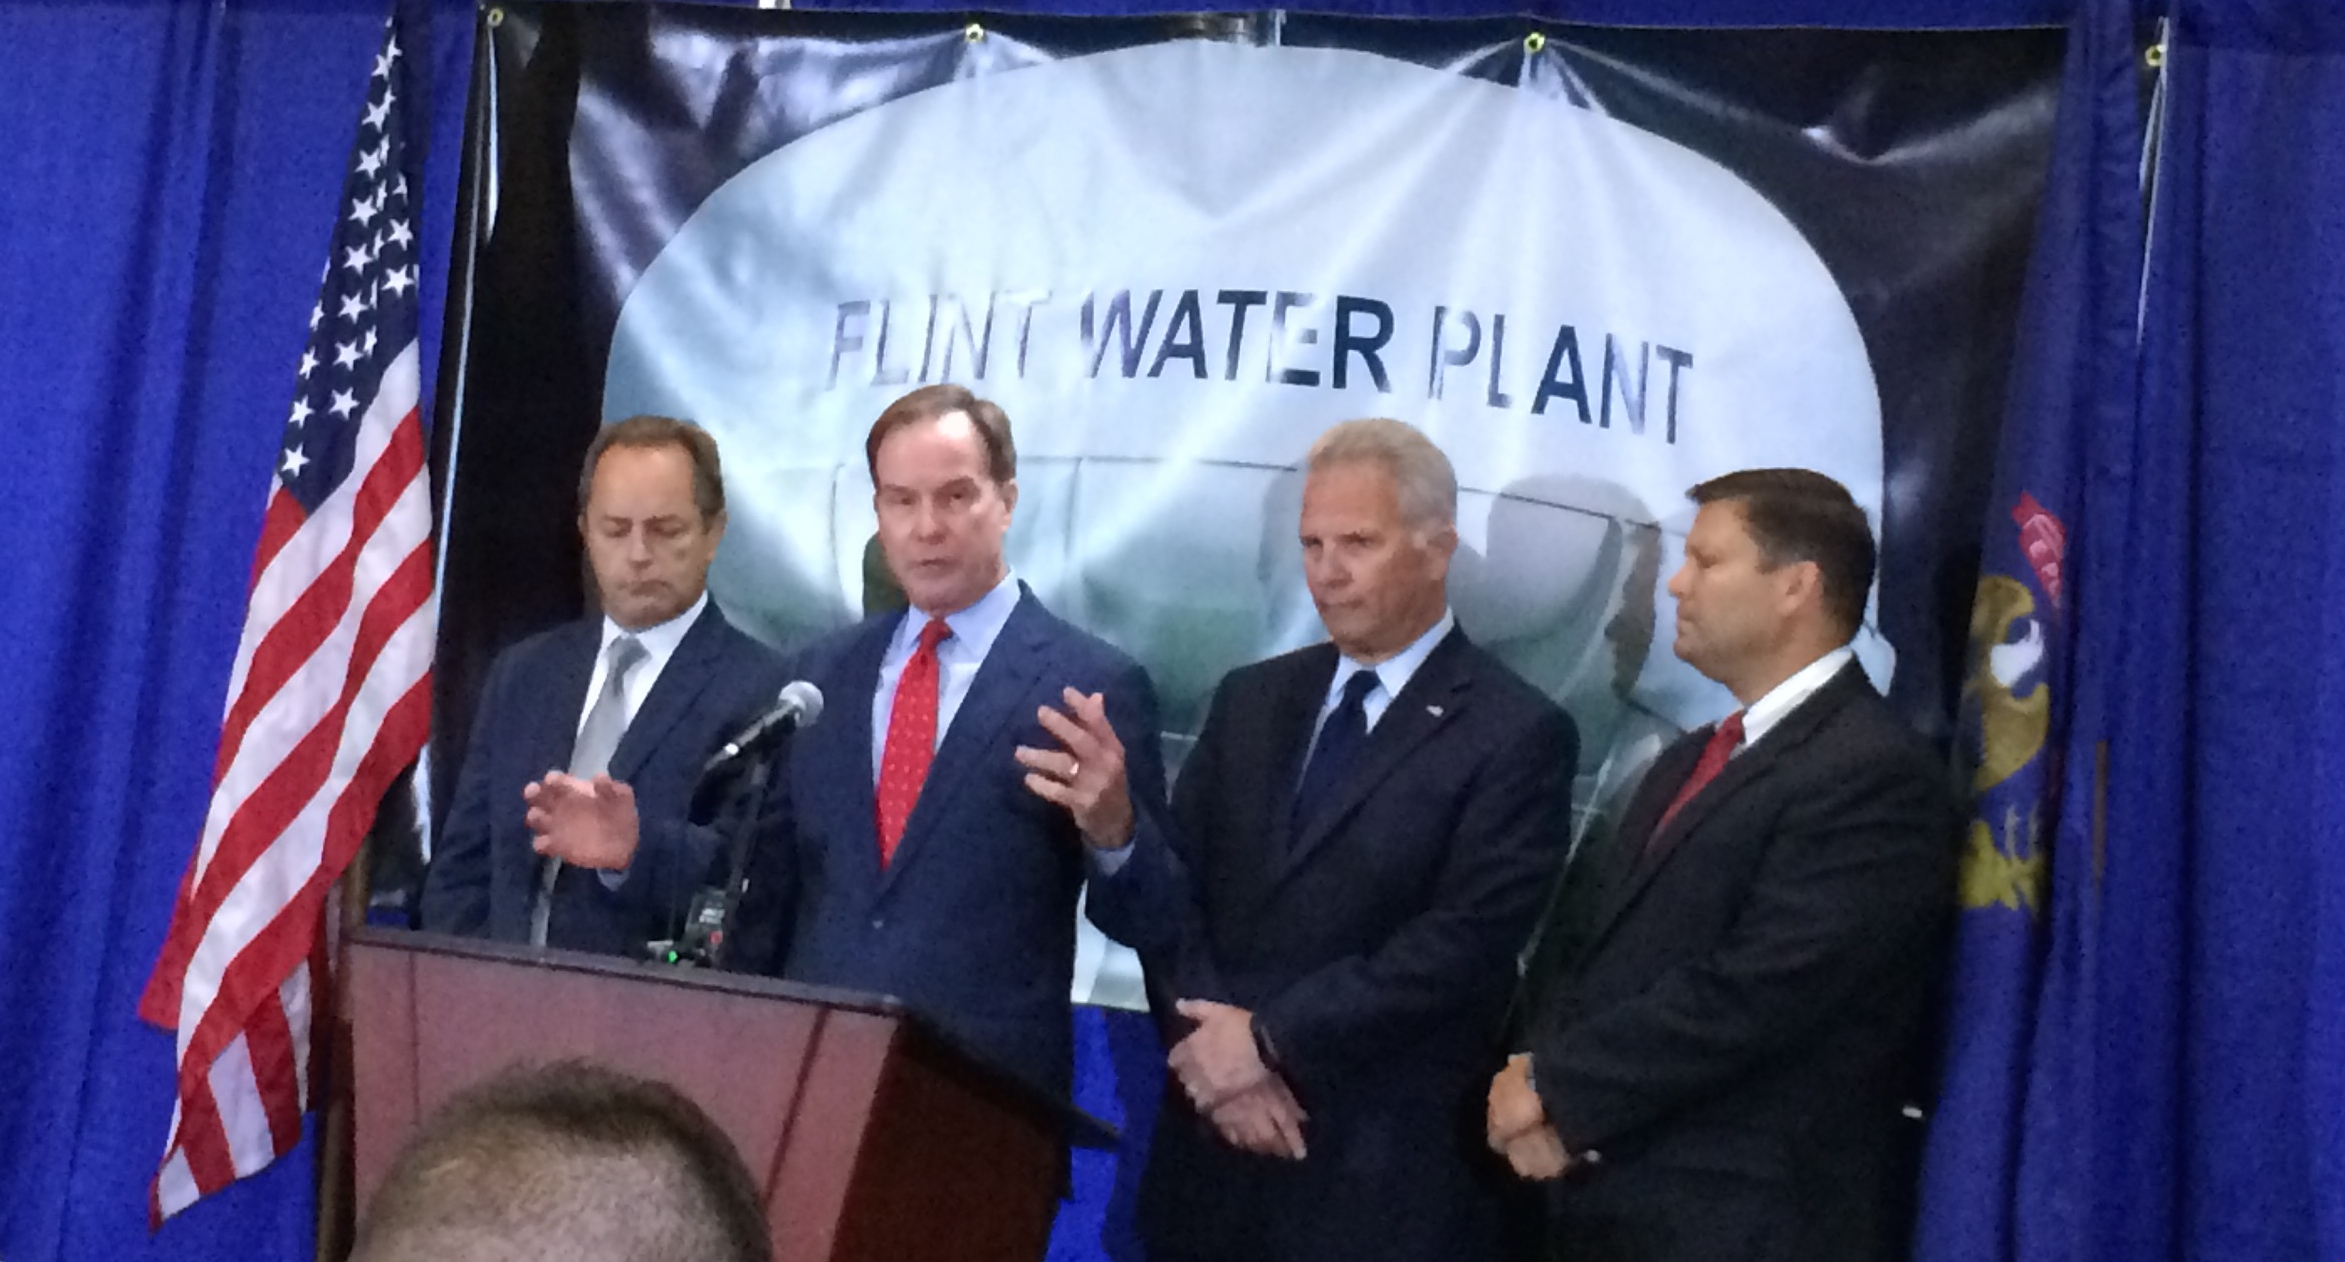 Official hopes charges in Flint water case help return trust